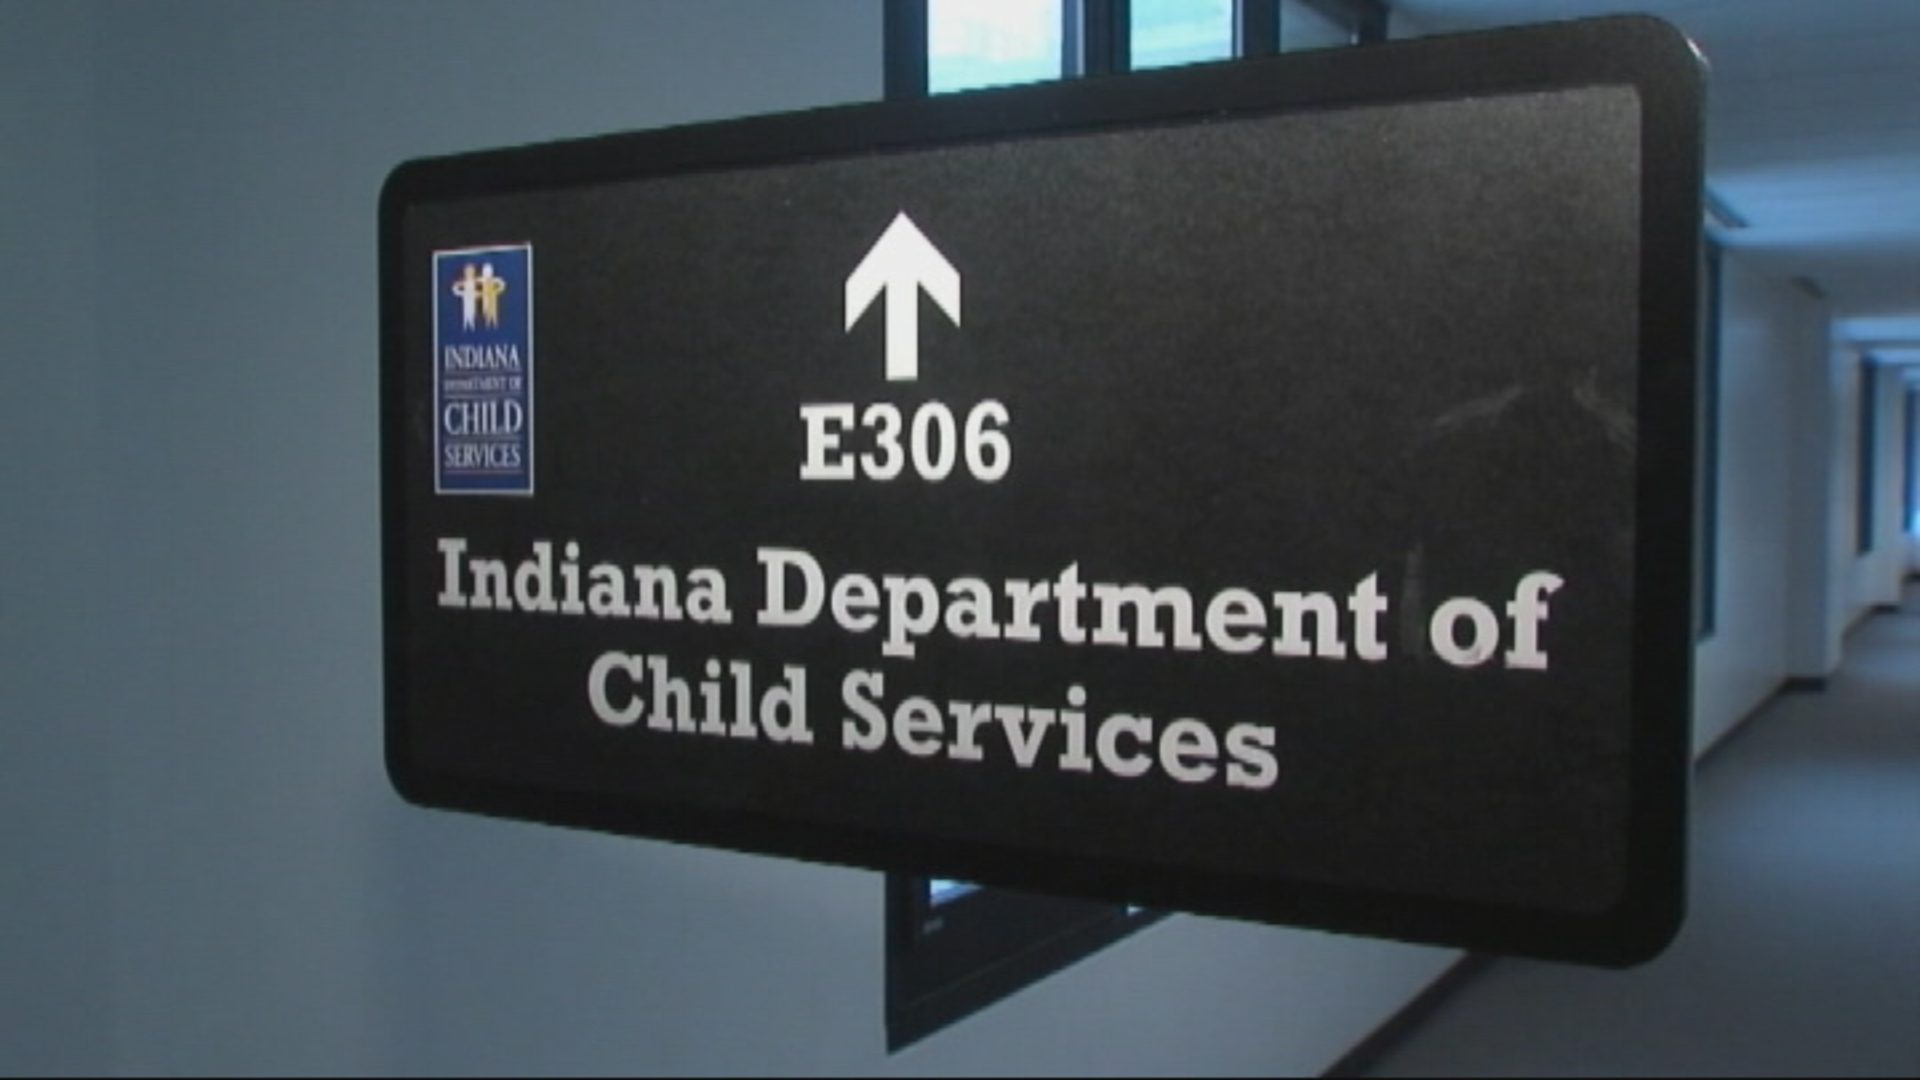 Indiana Department of Child Services